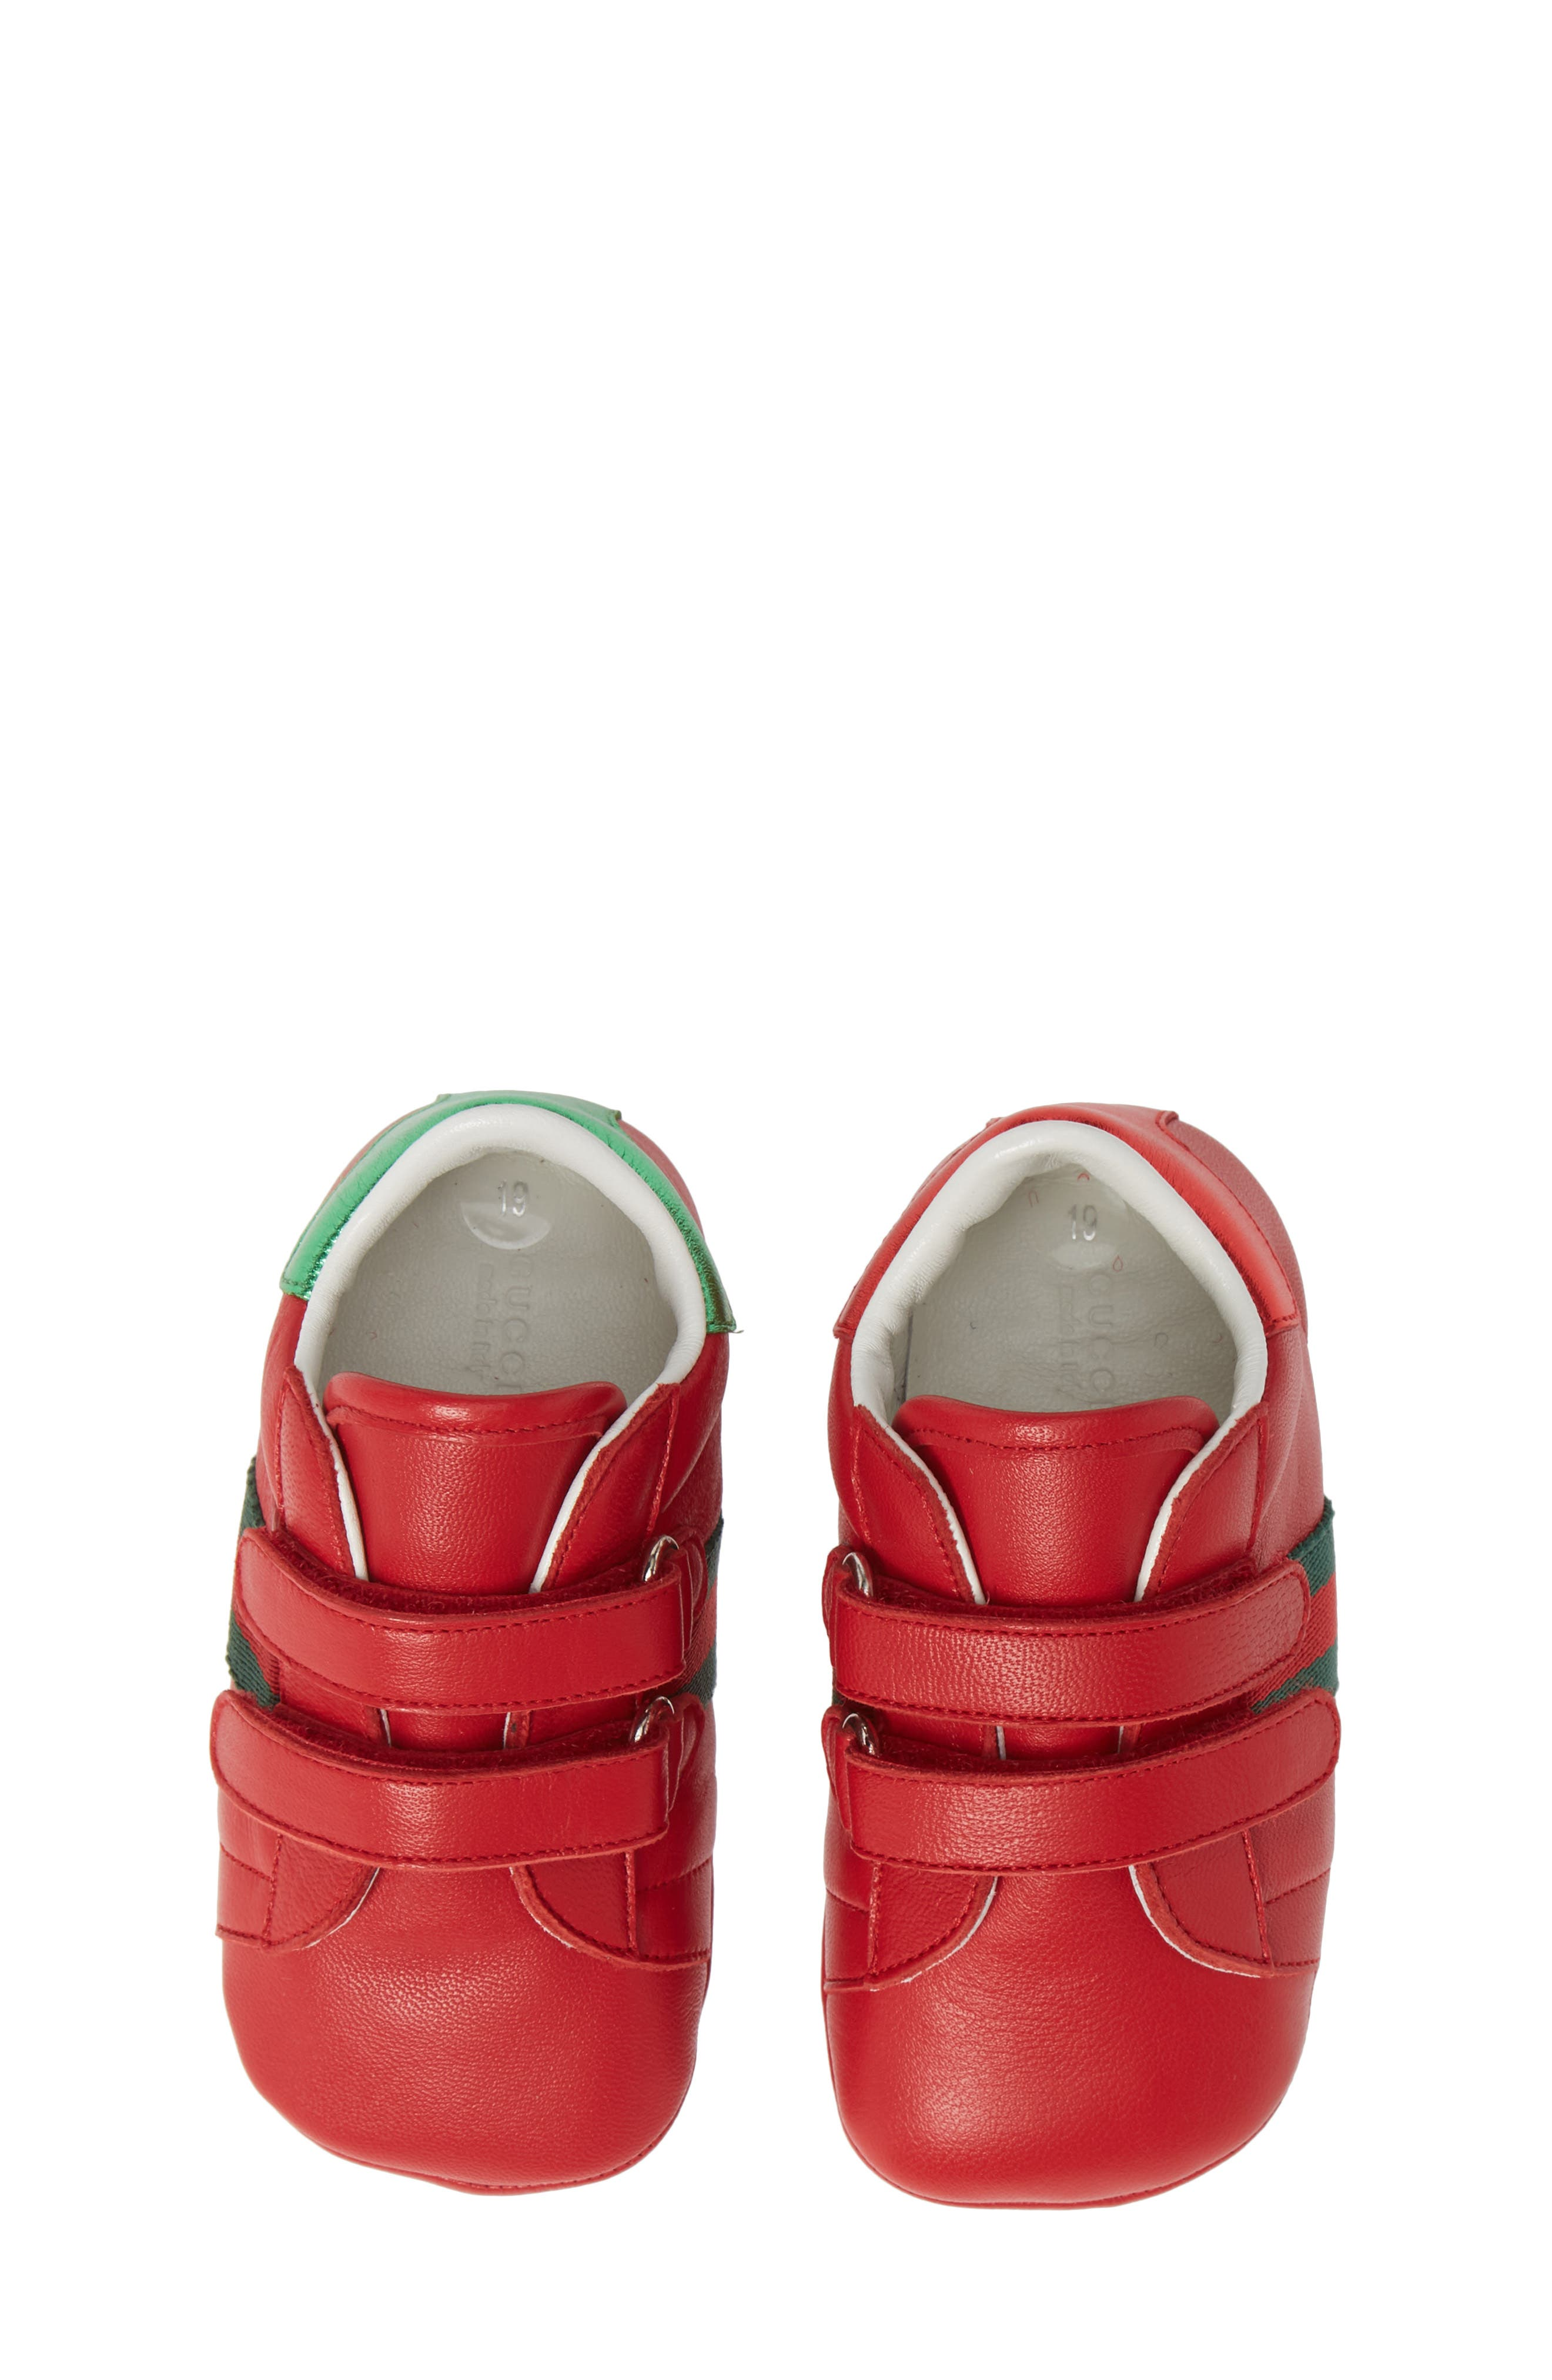 GUCCI,                             Ace Crib Shoe,                             Main thumbnail 1, color,                             RED